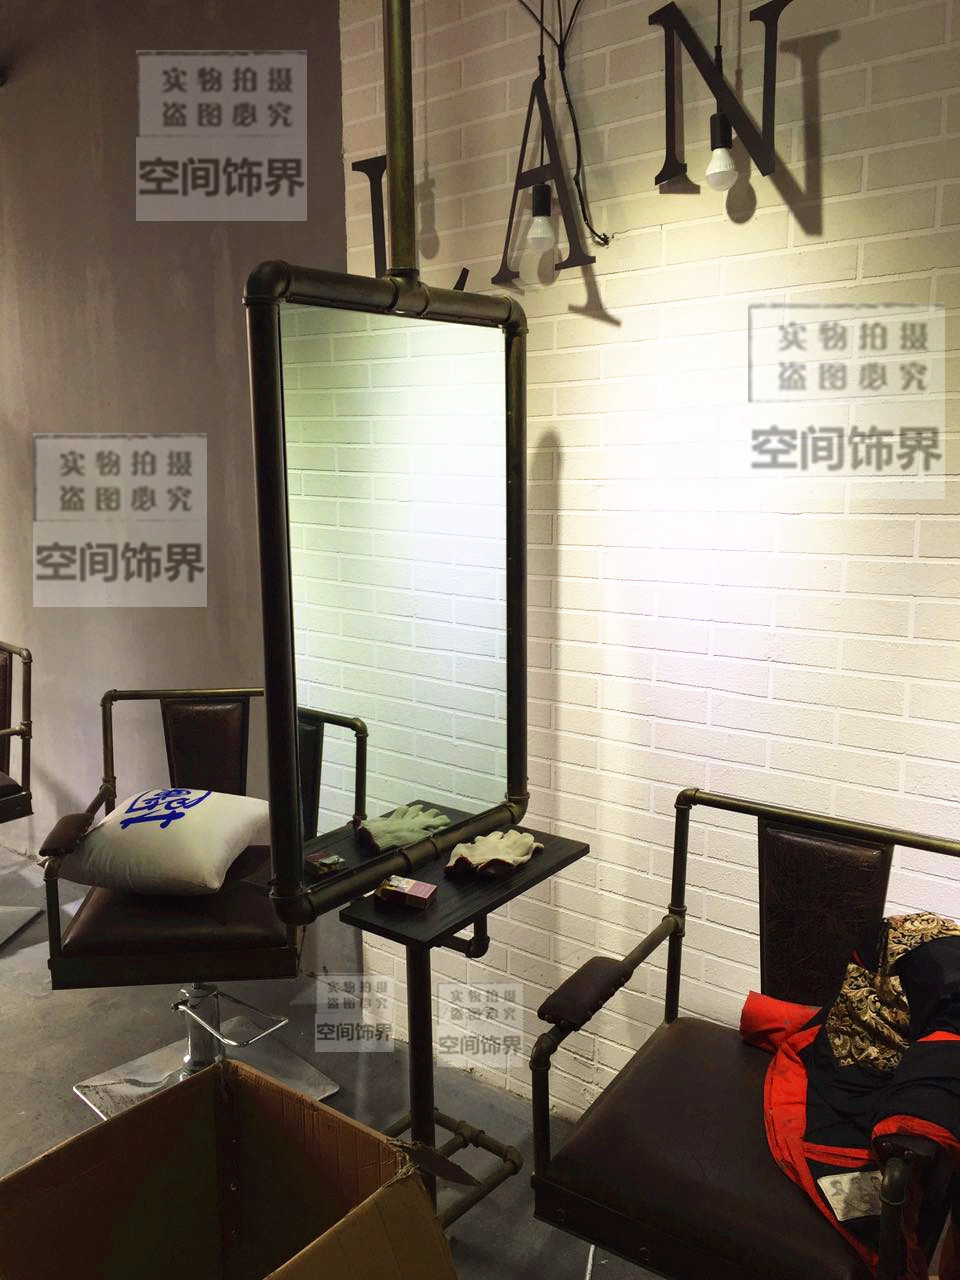 Salon Industrial Industrial Wind Barber Shop Mirror Iron Hairdressing Beauty Salon